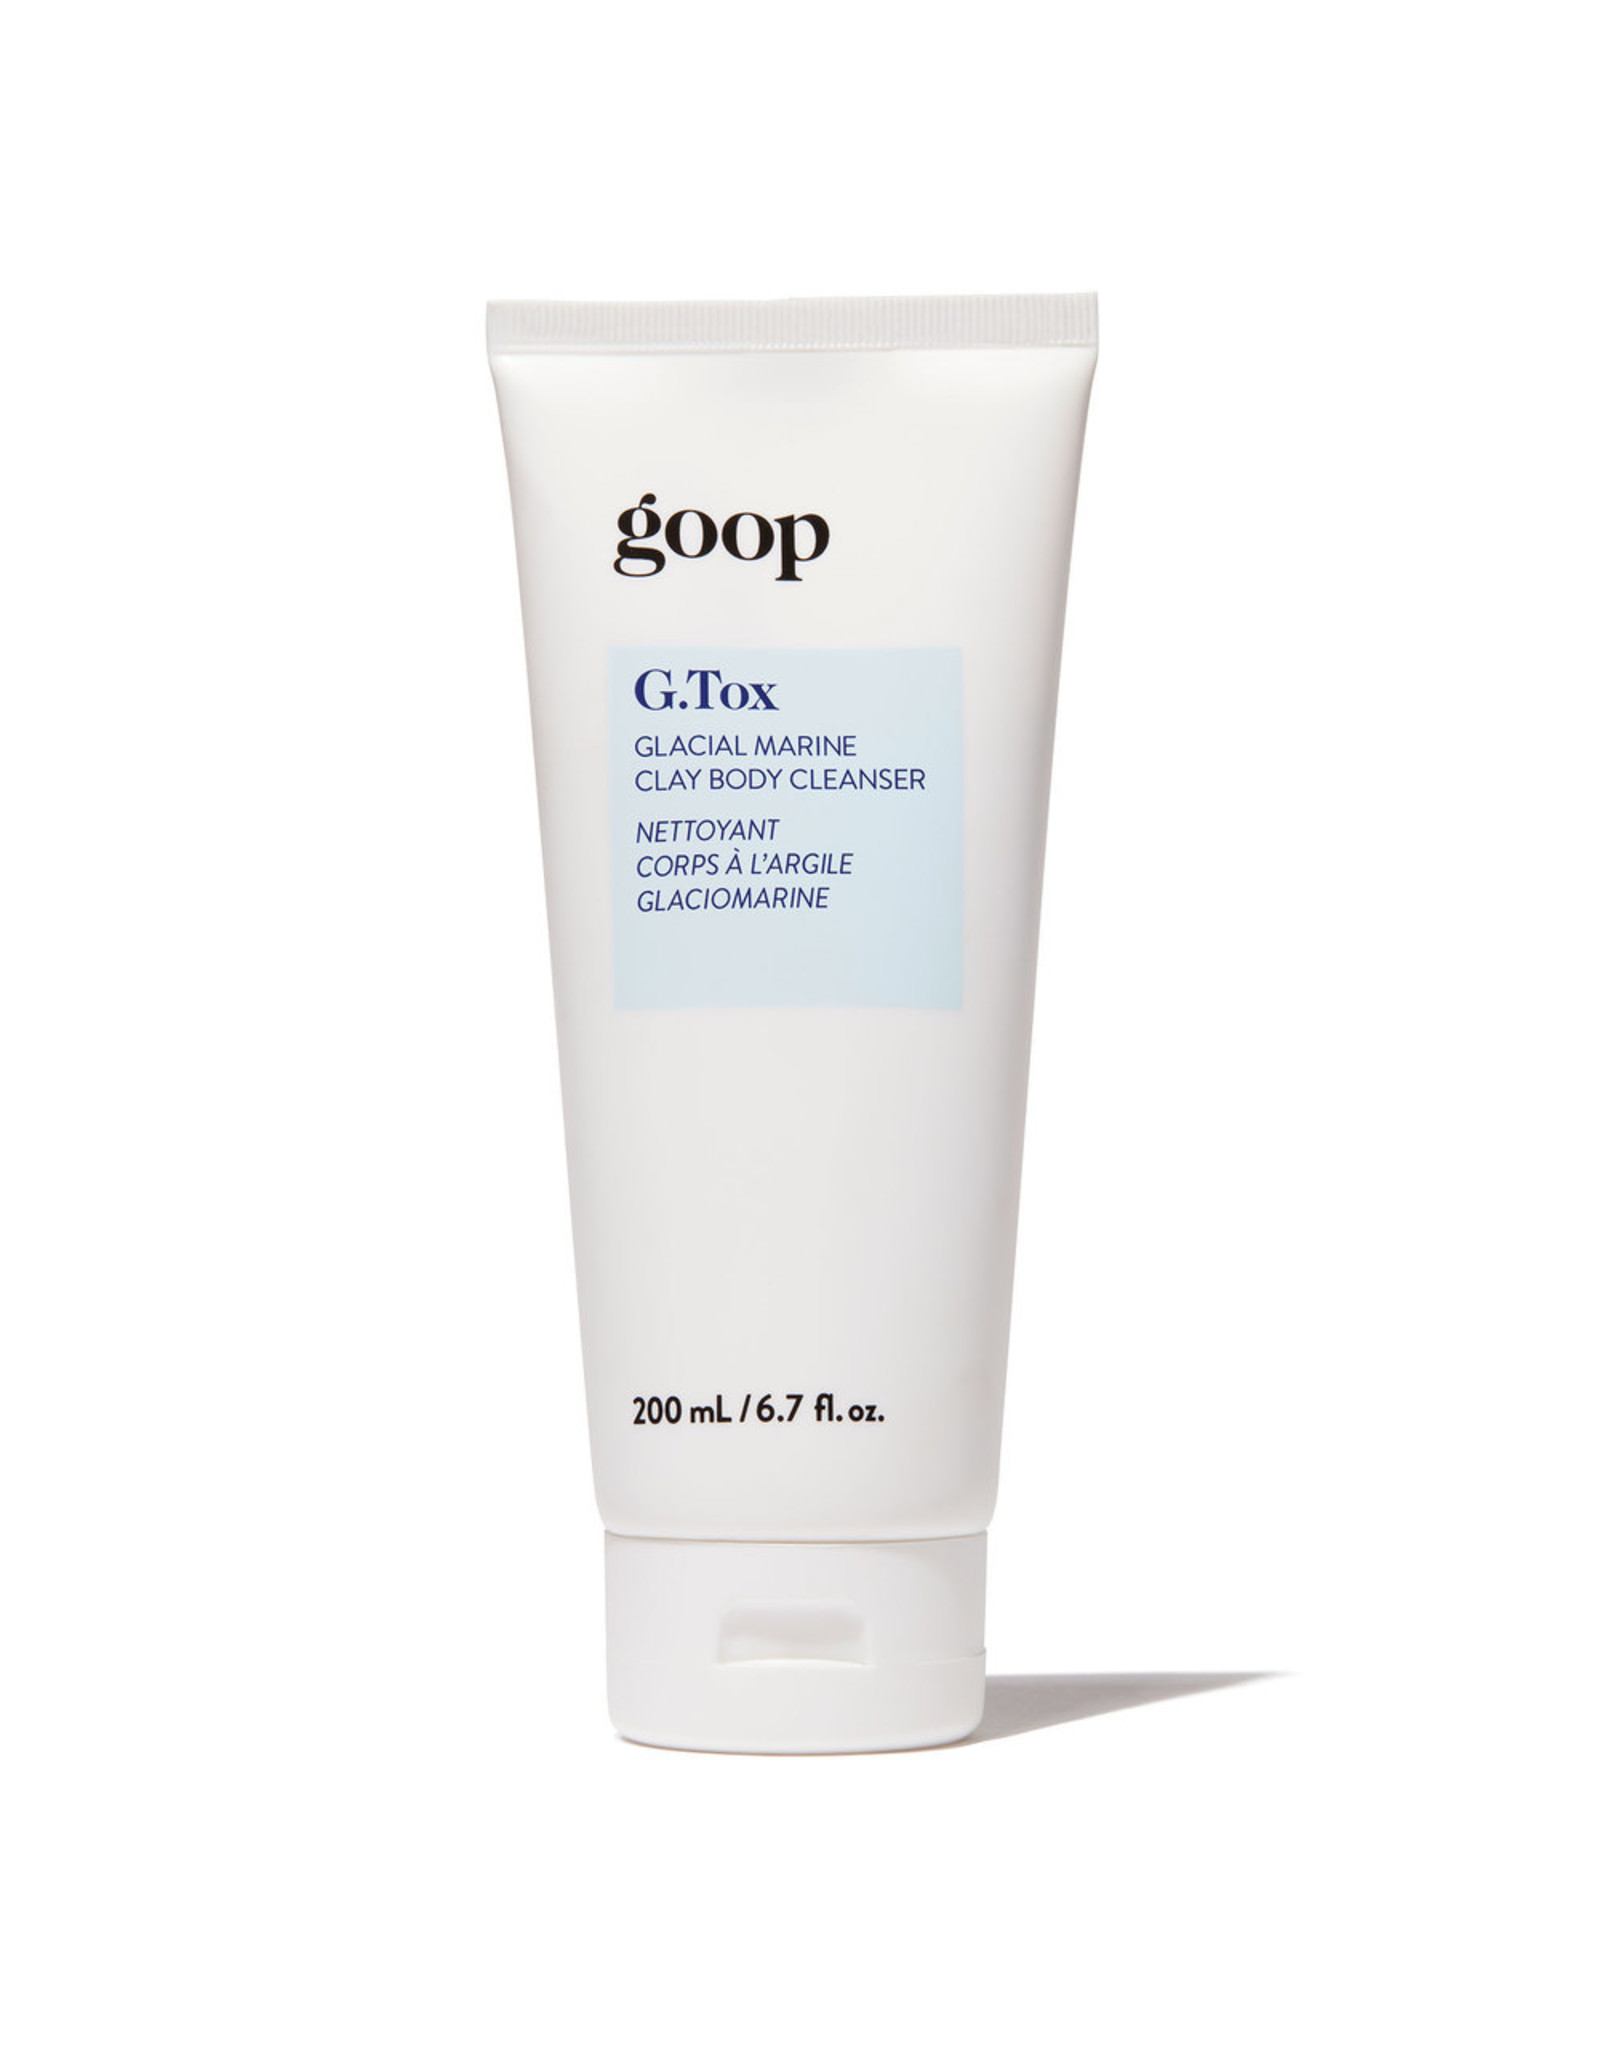 goop Body goop Beauty G.Tox Glacial Marine Clay Body Cleanser